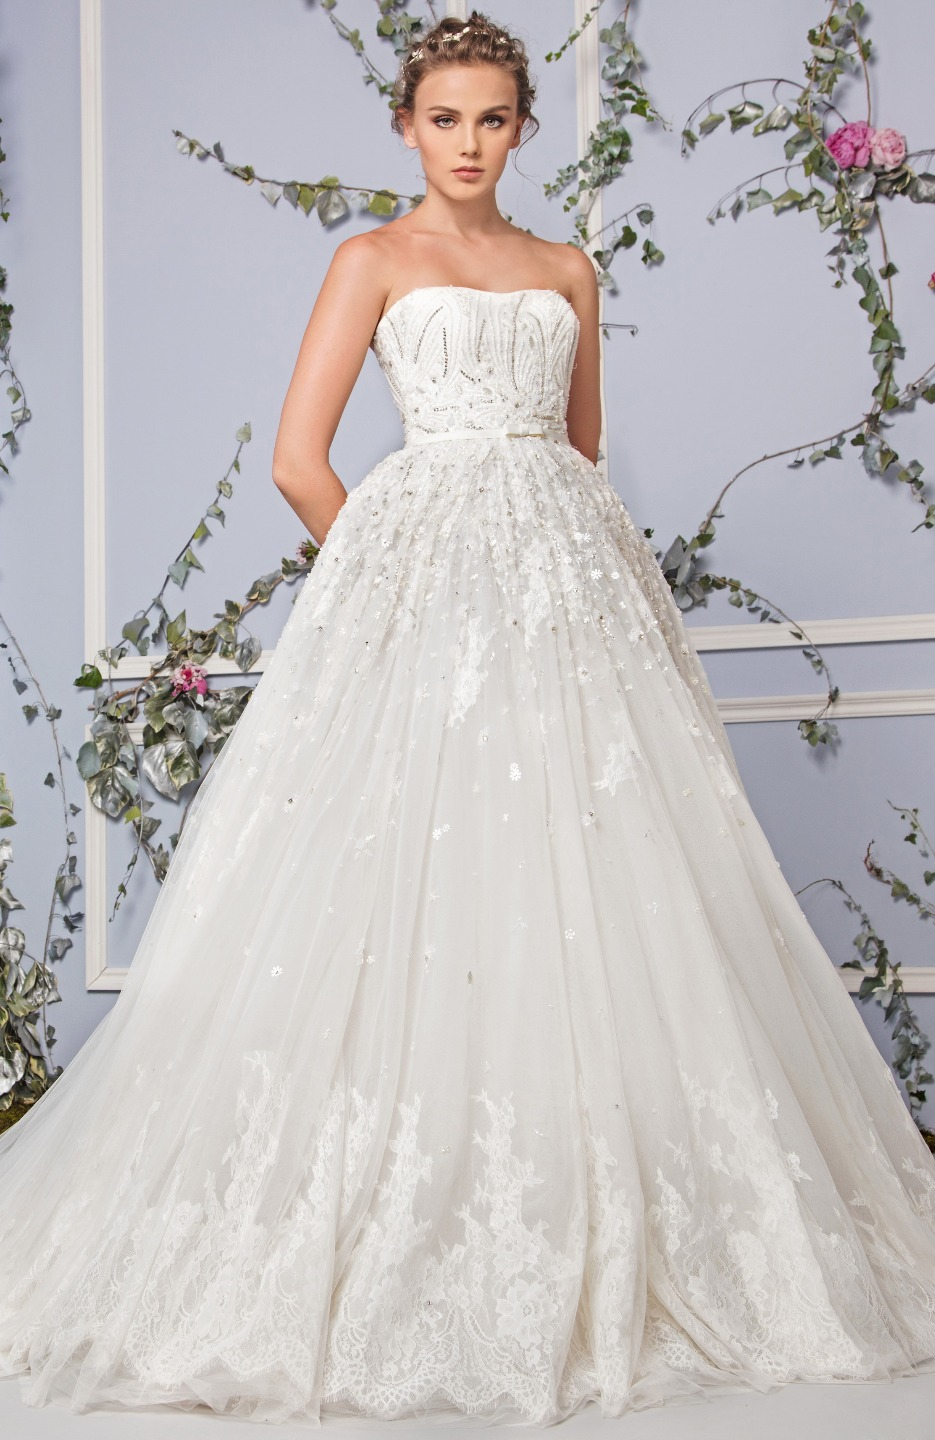 COUTURE Classic A-line Wedding Dress   Kleinfeld Bridal